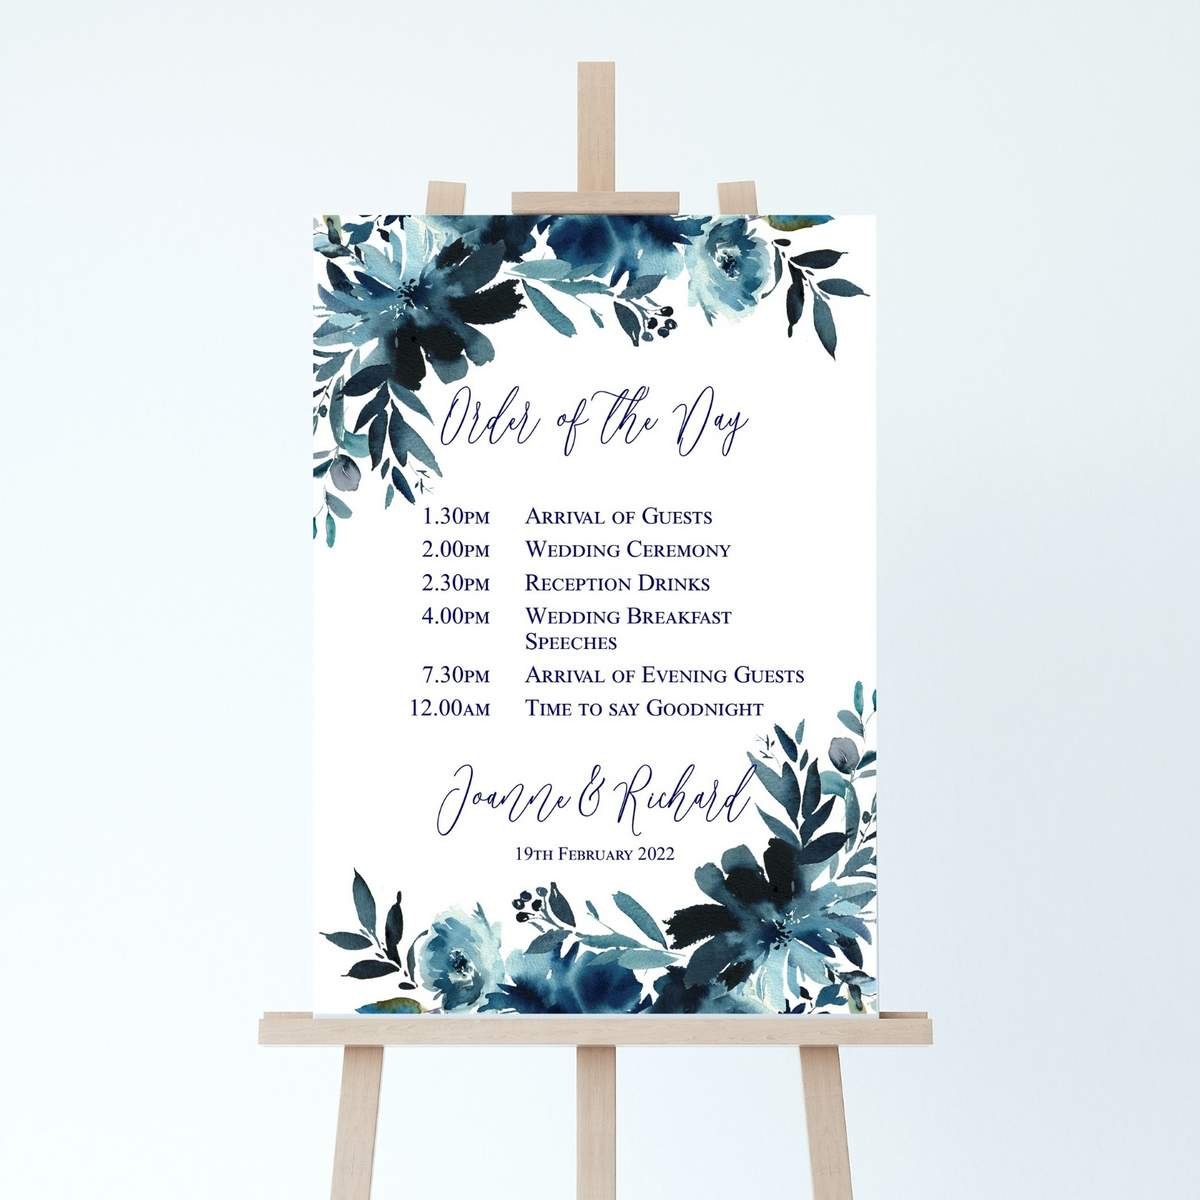 wedding order of the day board with a navy blue floral design